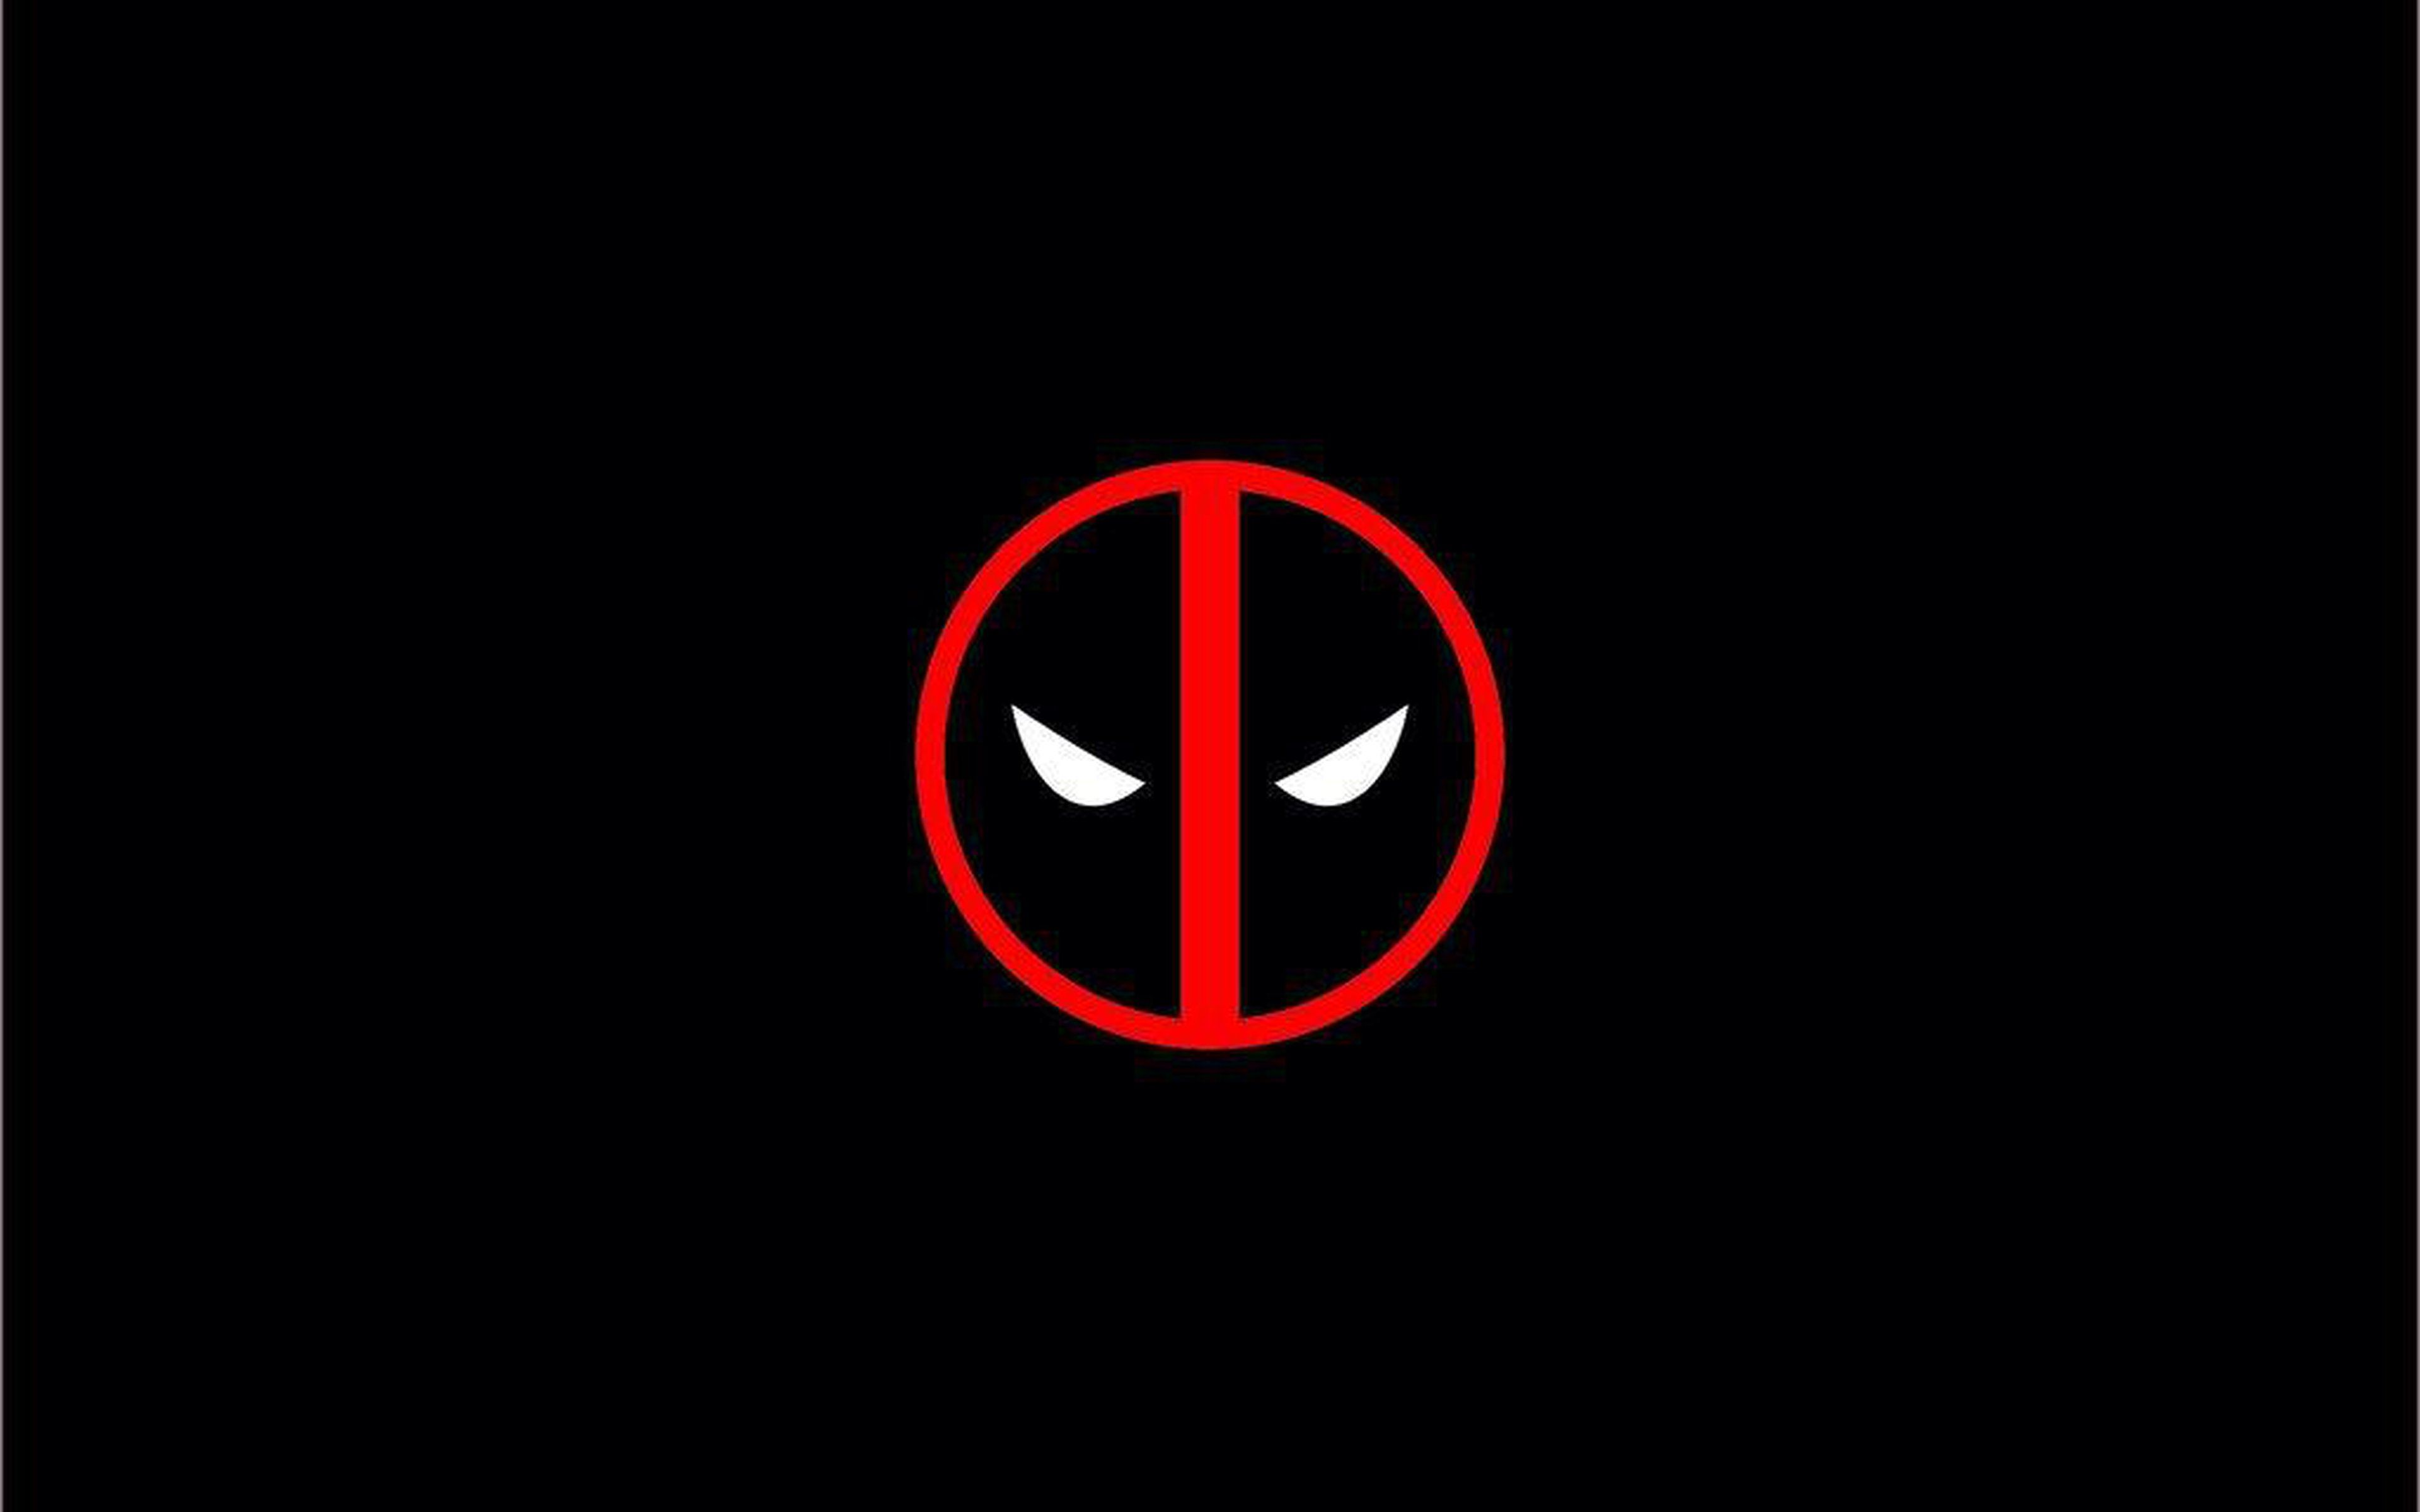 Lion Hd Wallpapers For Iphone 39 Best Free Deadpool Logo 4k Wallpapers Wallpaperaccess